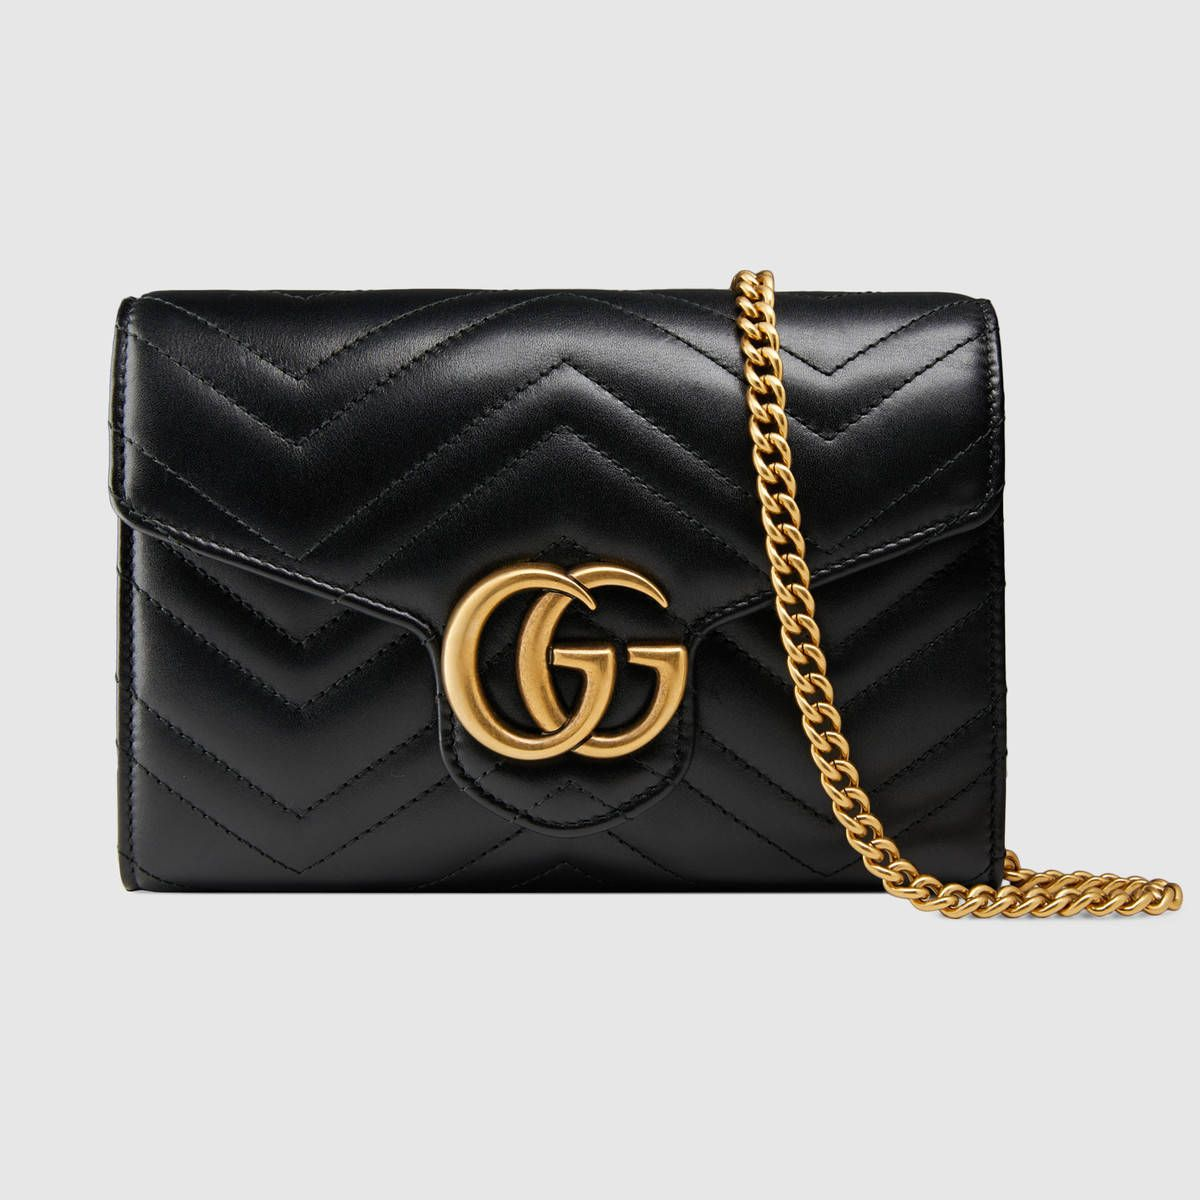 80e35bb17 Gucci GG Marmont matelassé mini bag - $1450, 16 card slots, a zipper  compartment and a main compartment split in two plus another compartment.  smooth ...